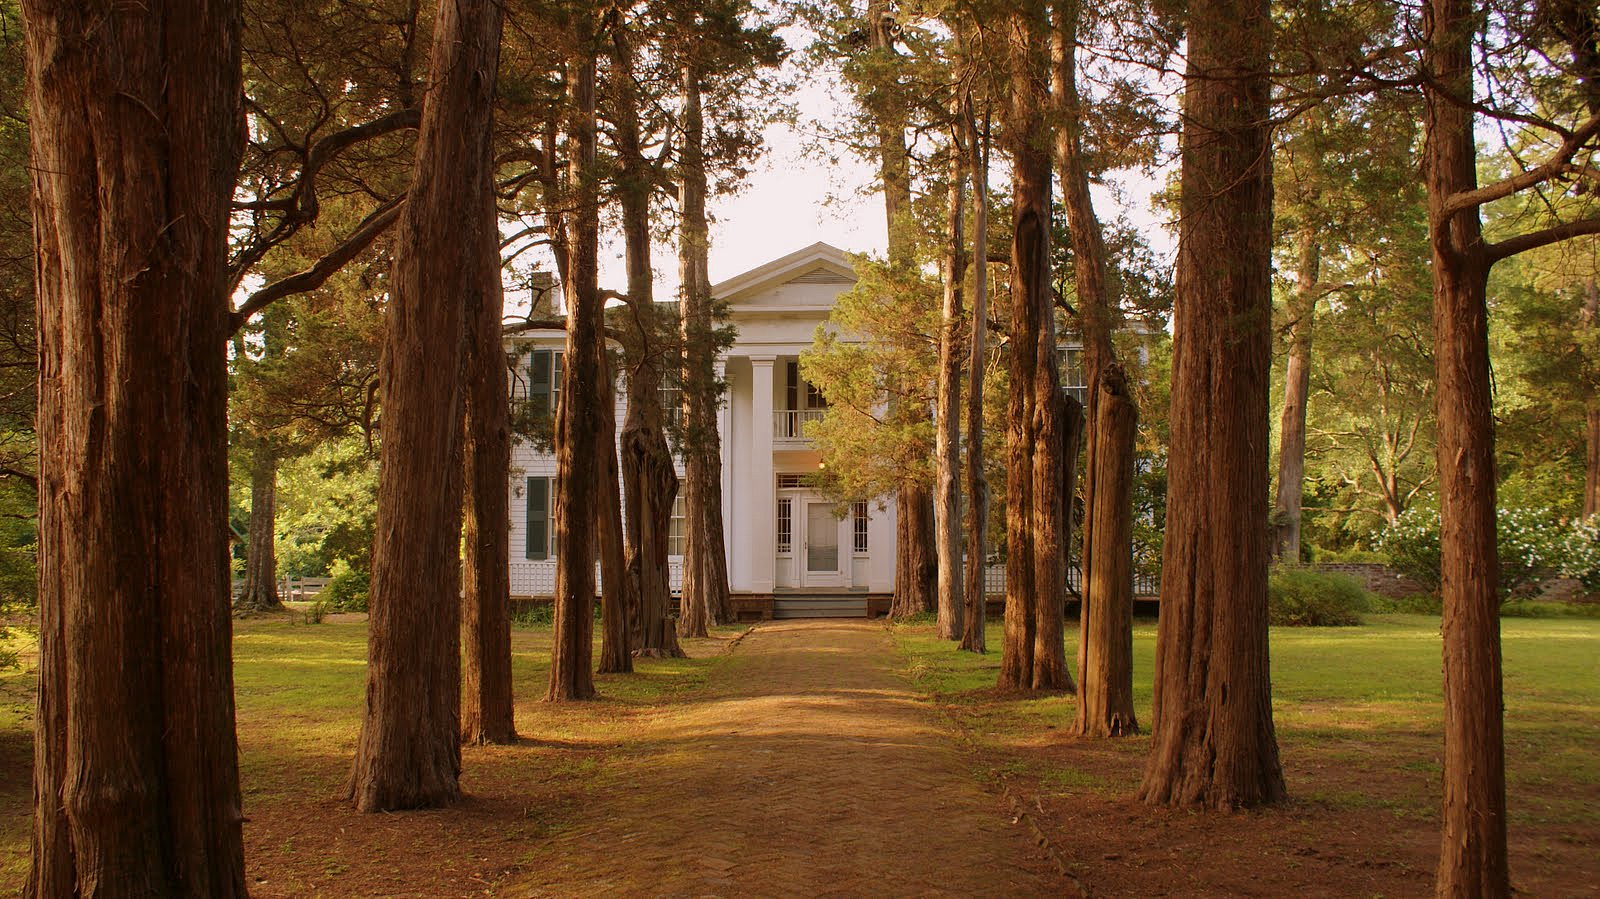 Rowan Oak: At Faulkner's Homeplace After a Long Drive